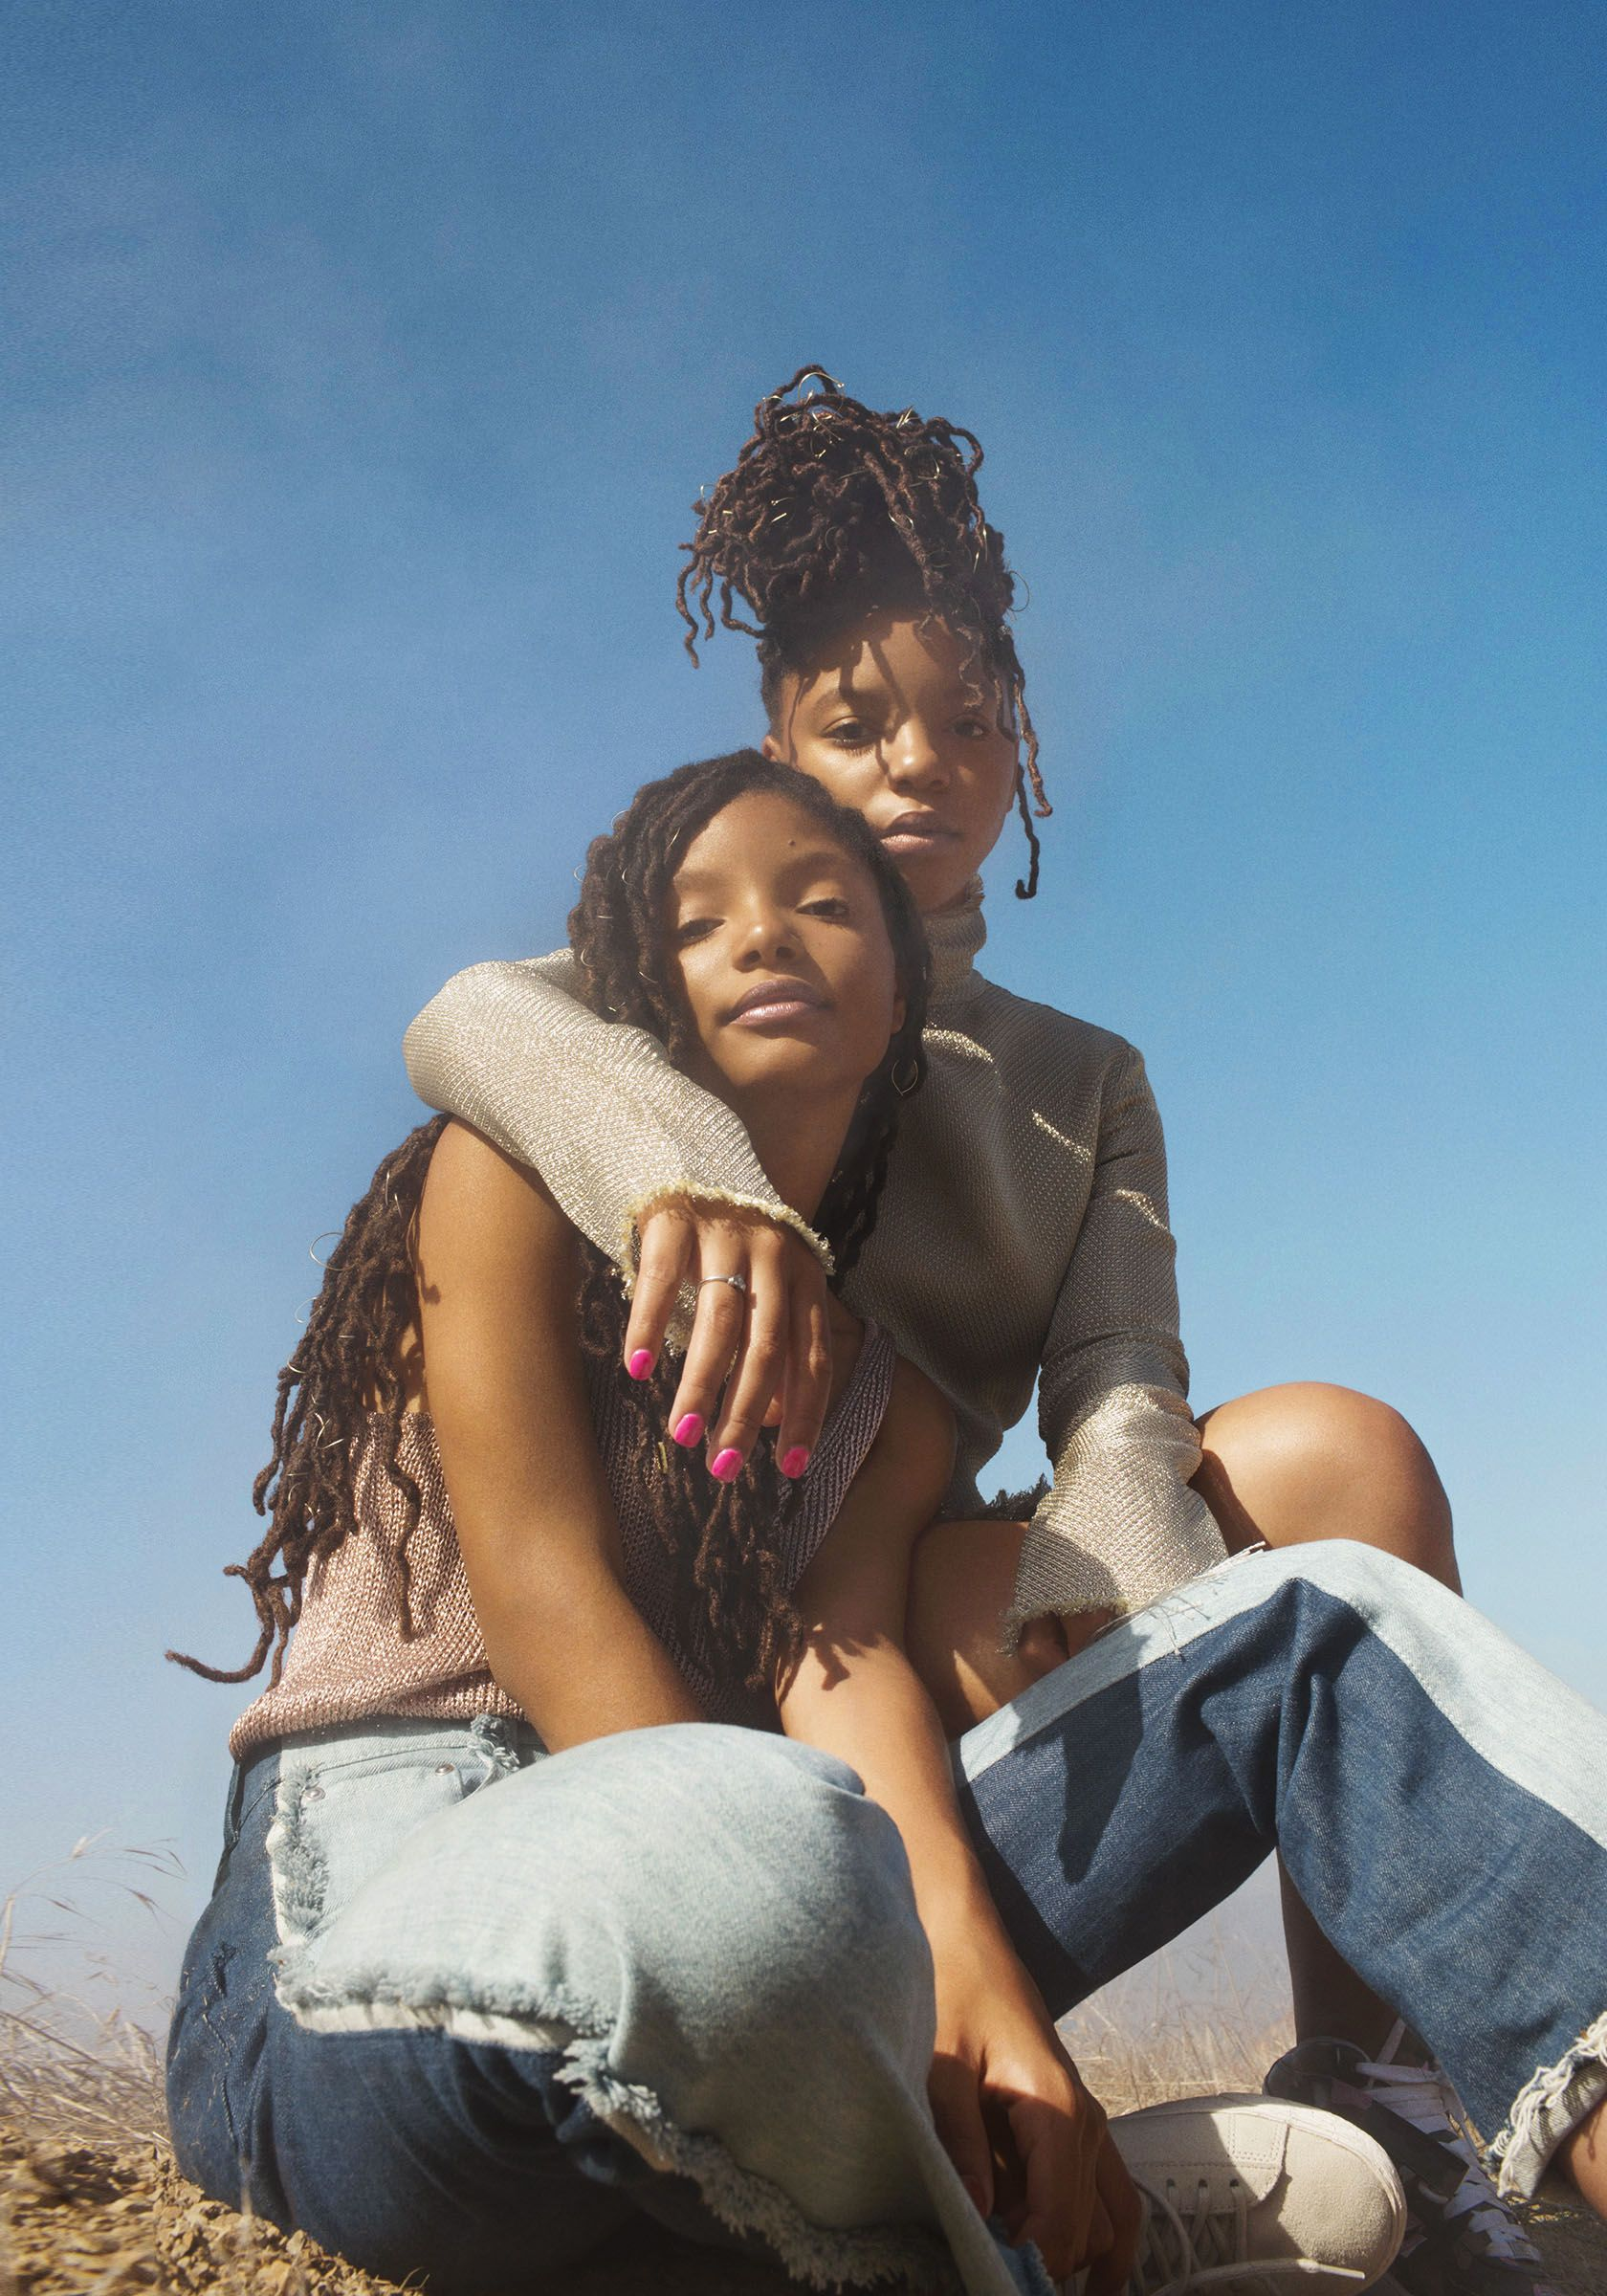 'Grown-ish' Stars Chloe and Halle Bailey Take You on a Tour of Barcelona